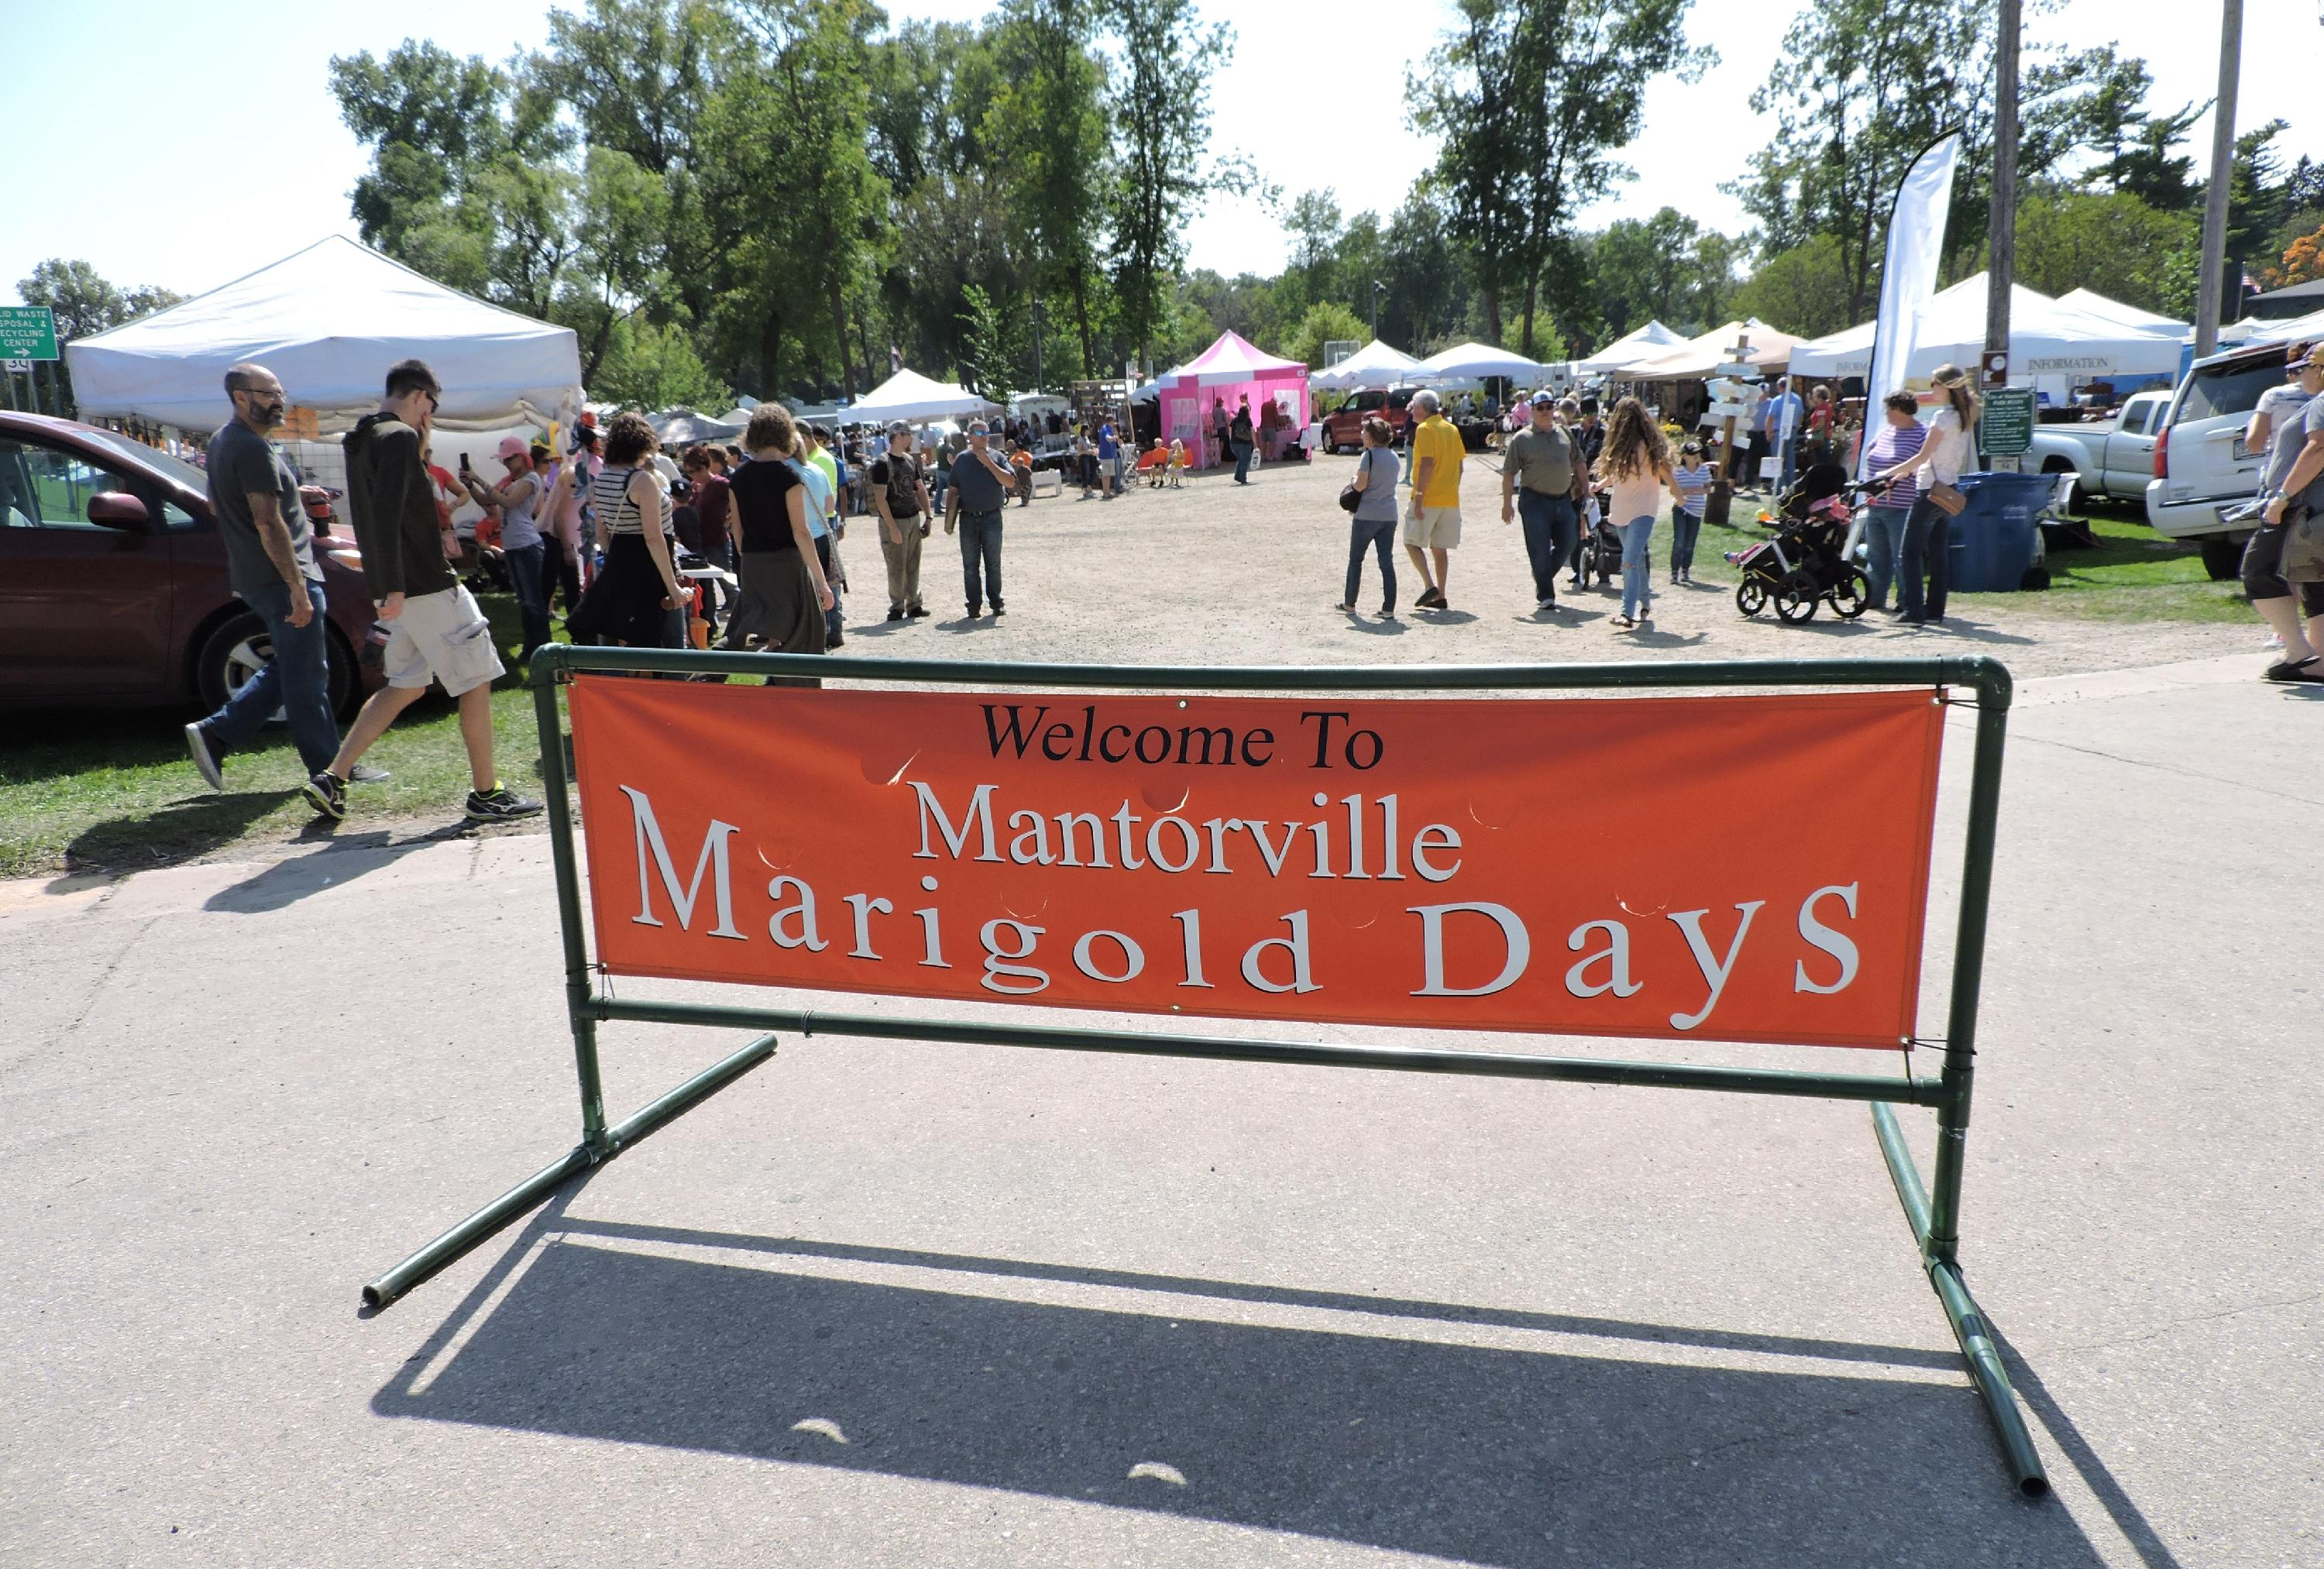 Welcome to Mantorville Marigold Days